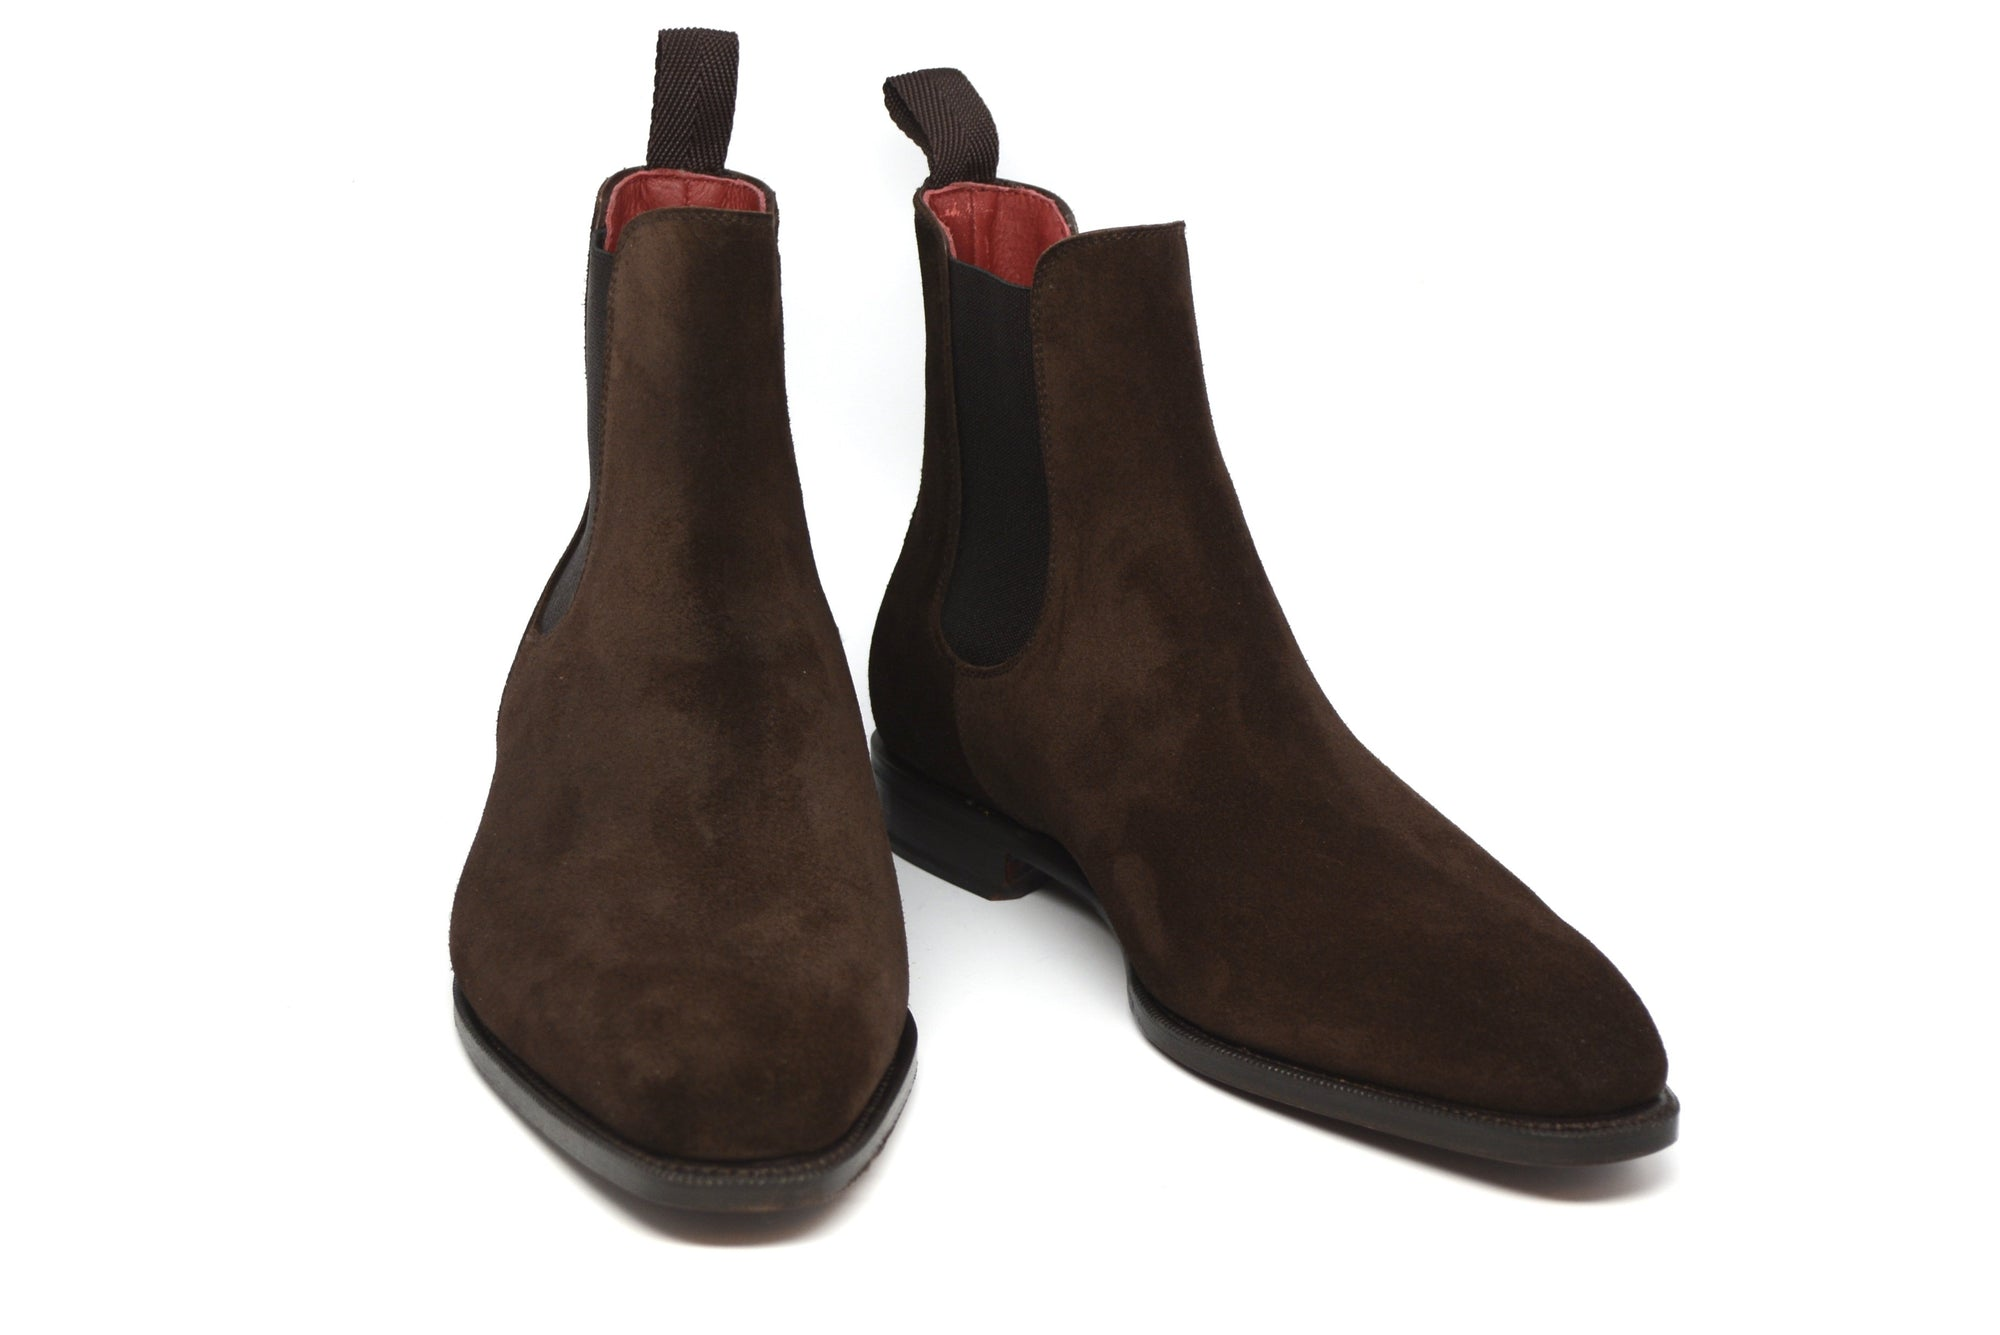 BENJAMIN - BROWN SUEDE - RITZ